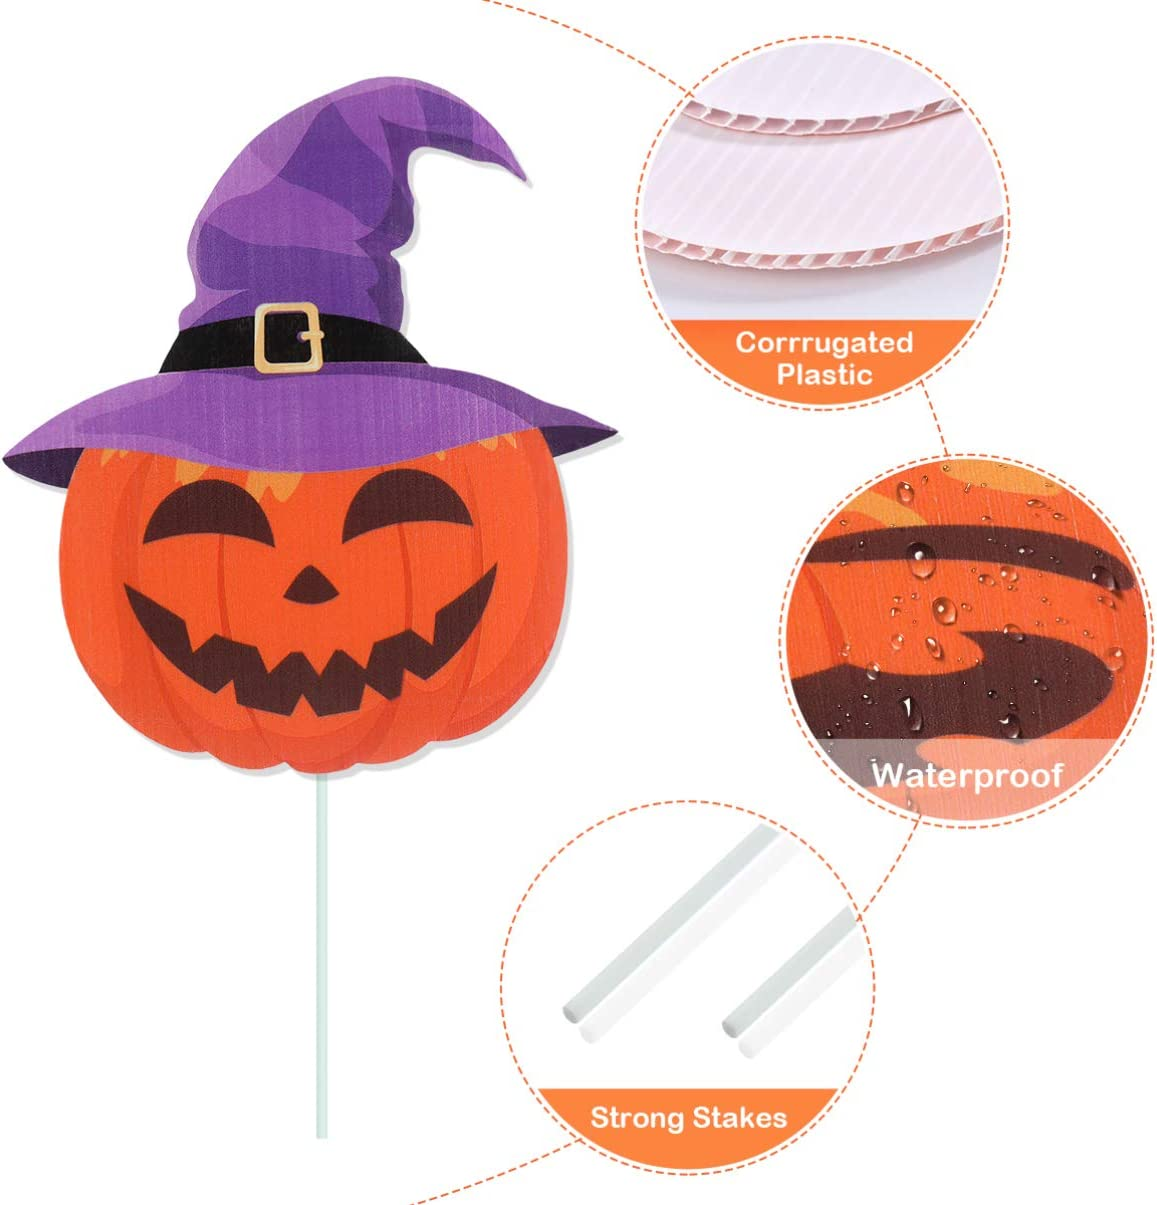 Halloween Decorations Outdoor, Extra Large Pumpkins Ghost Yard Signs with Stake, Halloween Trick or Treating Party Prop 8pcs